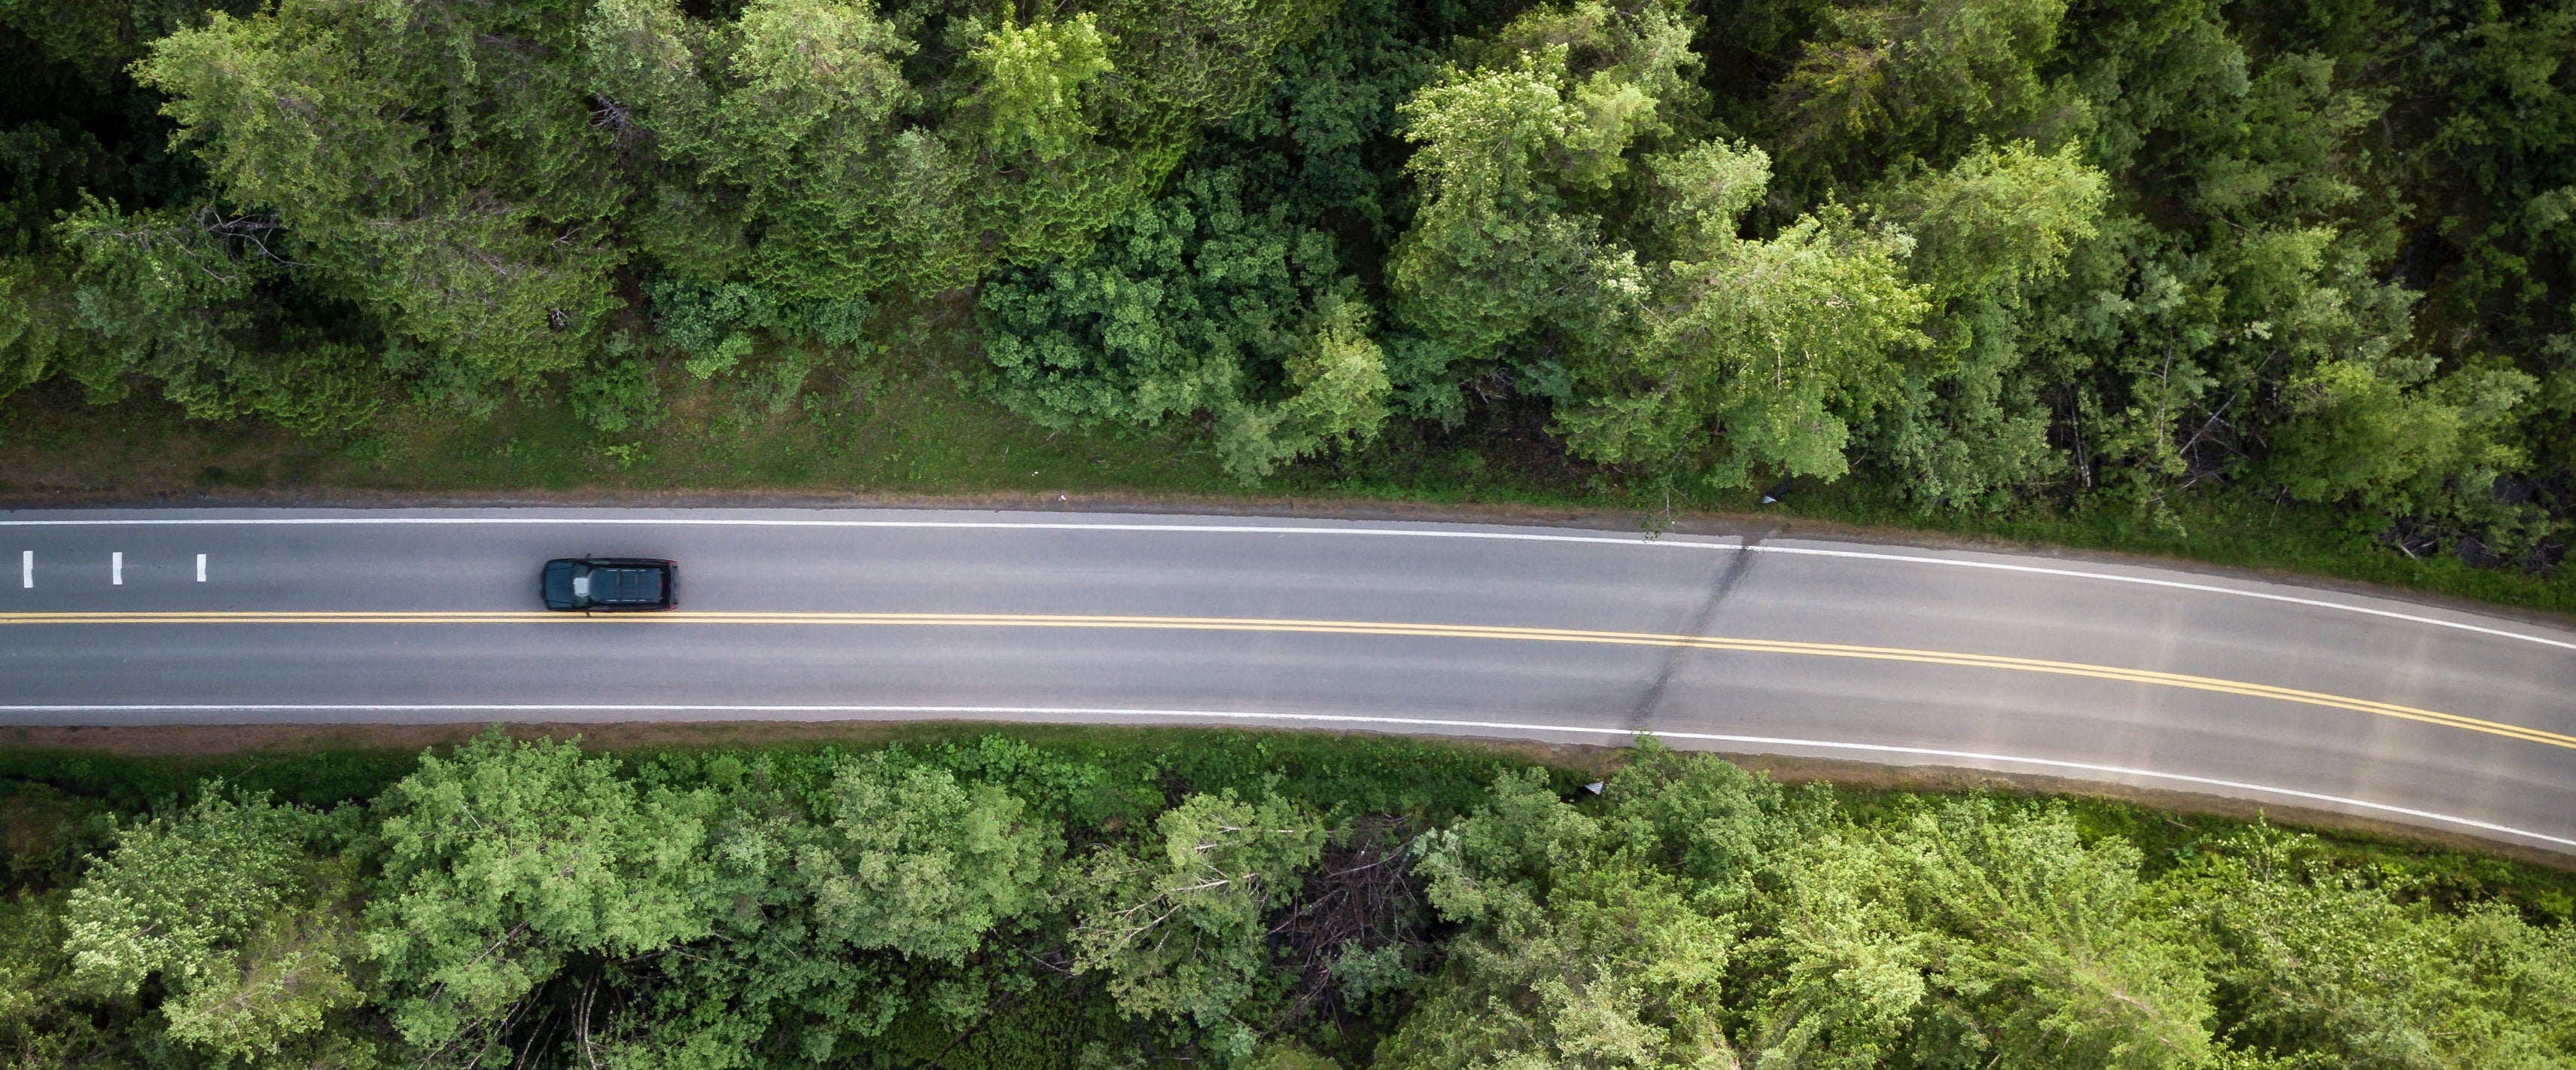 Bird's eye view of road in forest